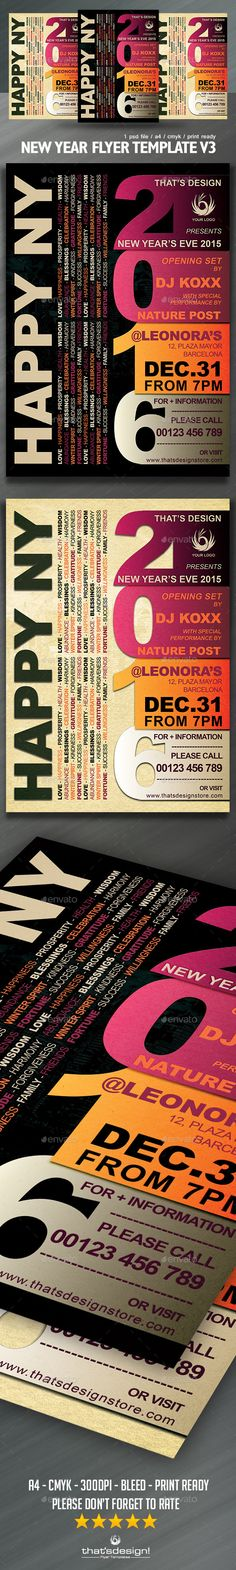 Music Festival Flyer Template V6 Flyers, Festivals and Flyer - coupon flyer template